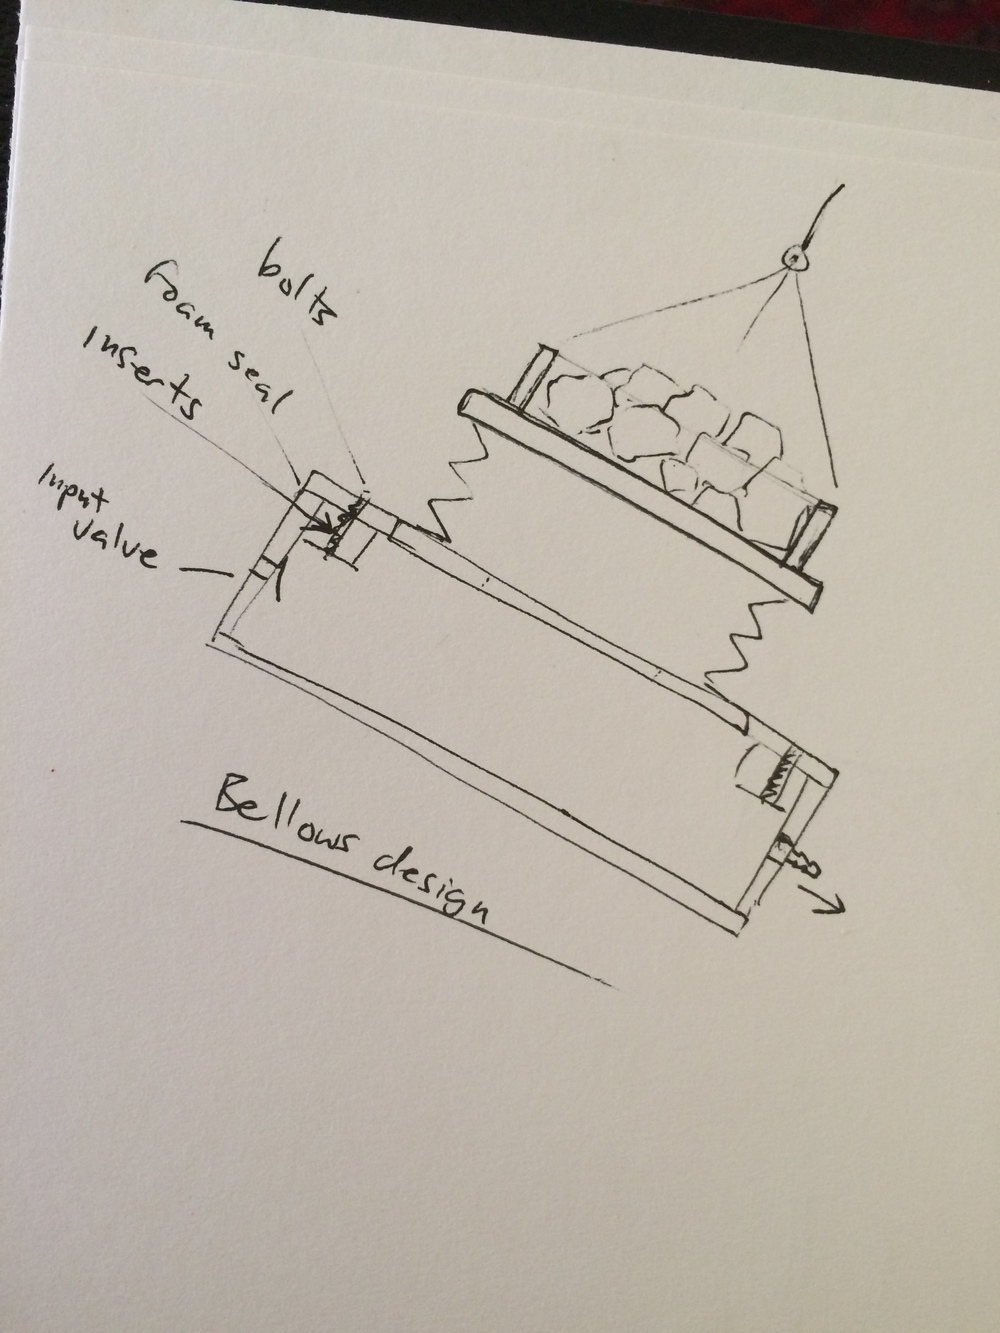 Bellows and air box sketch